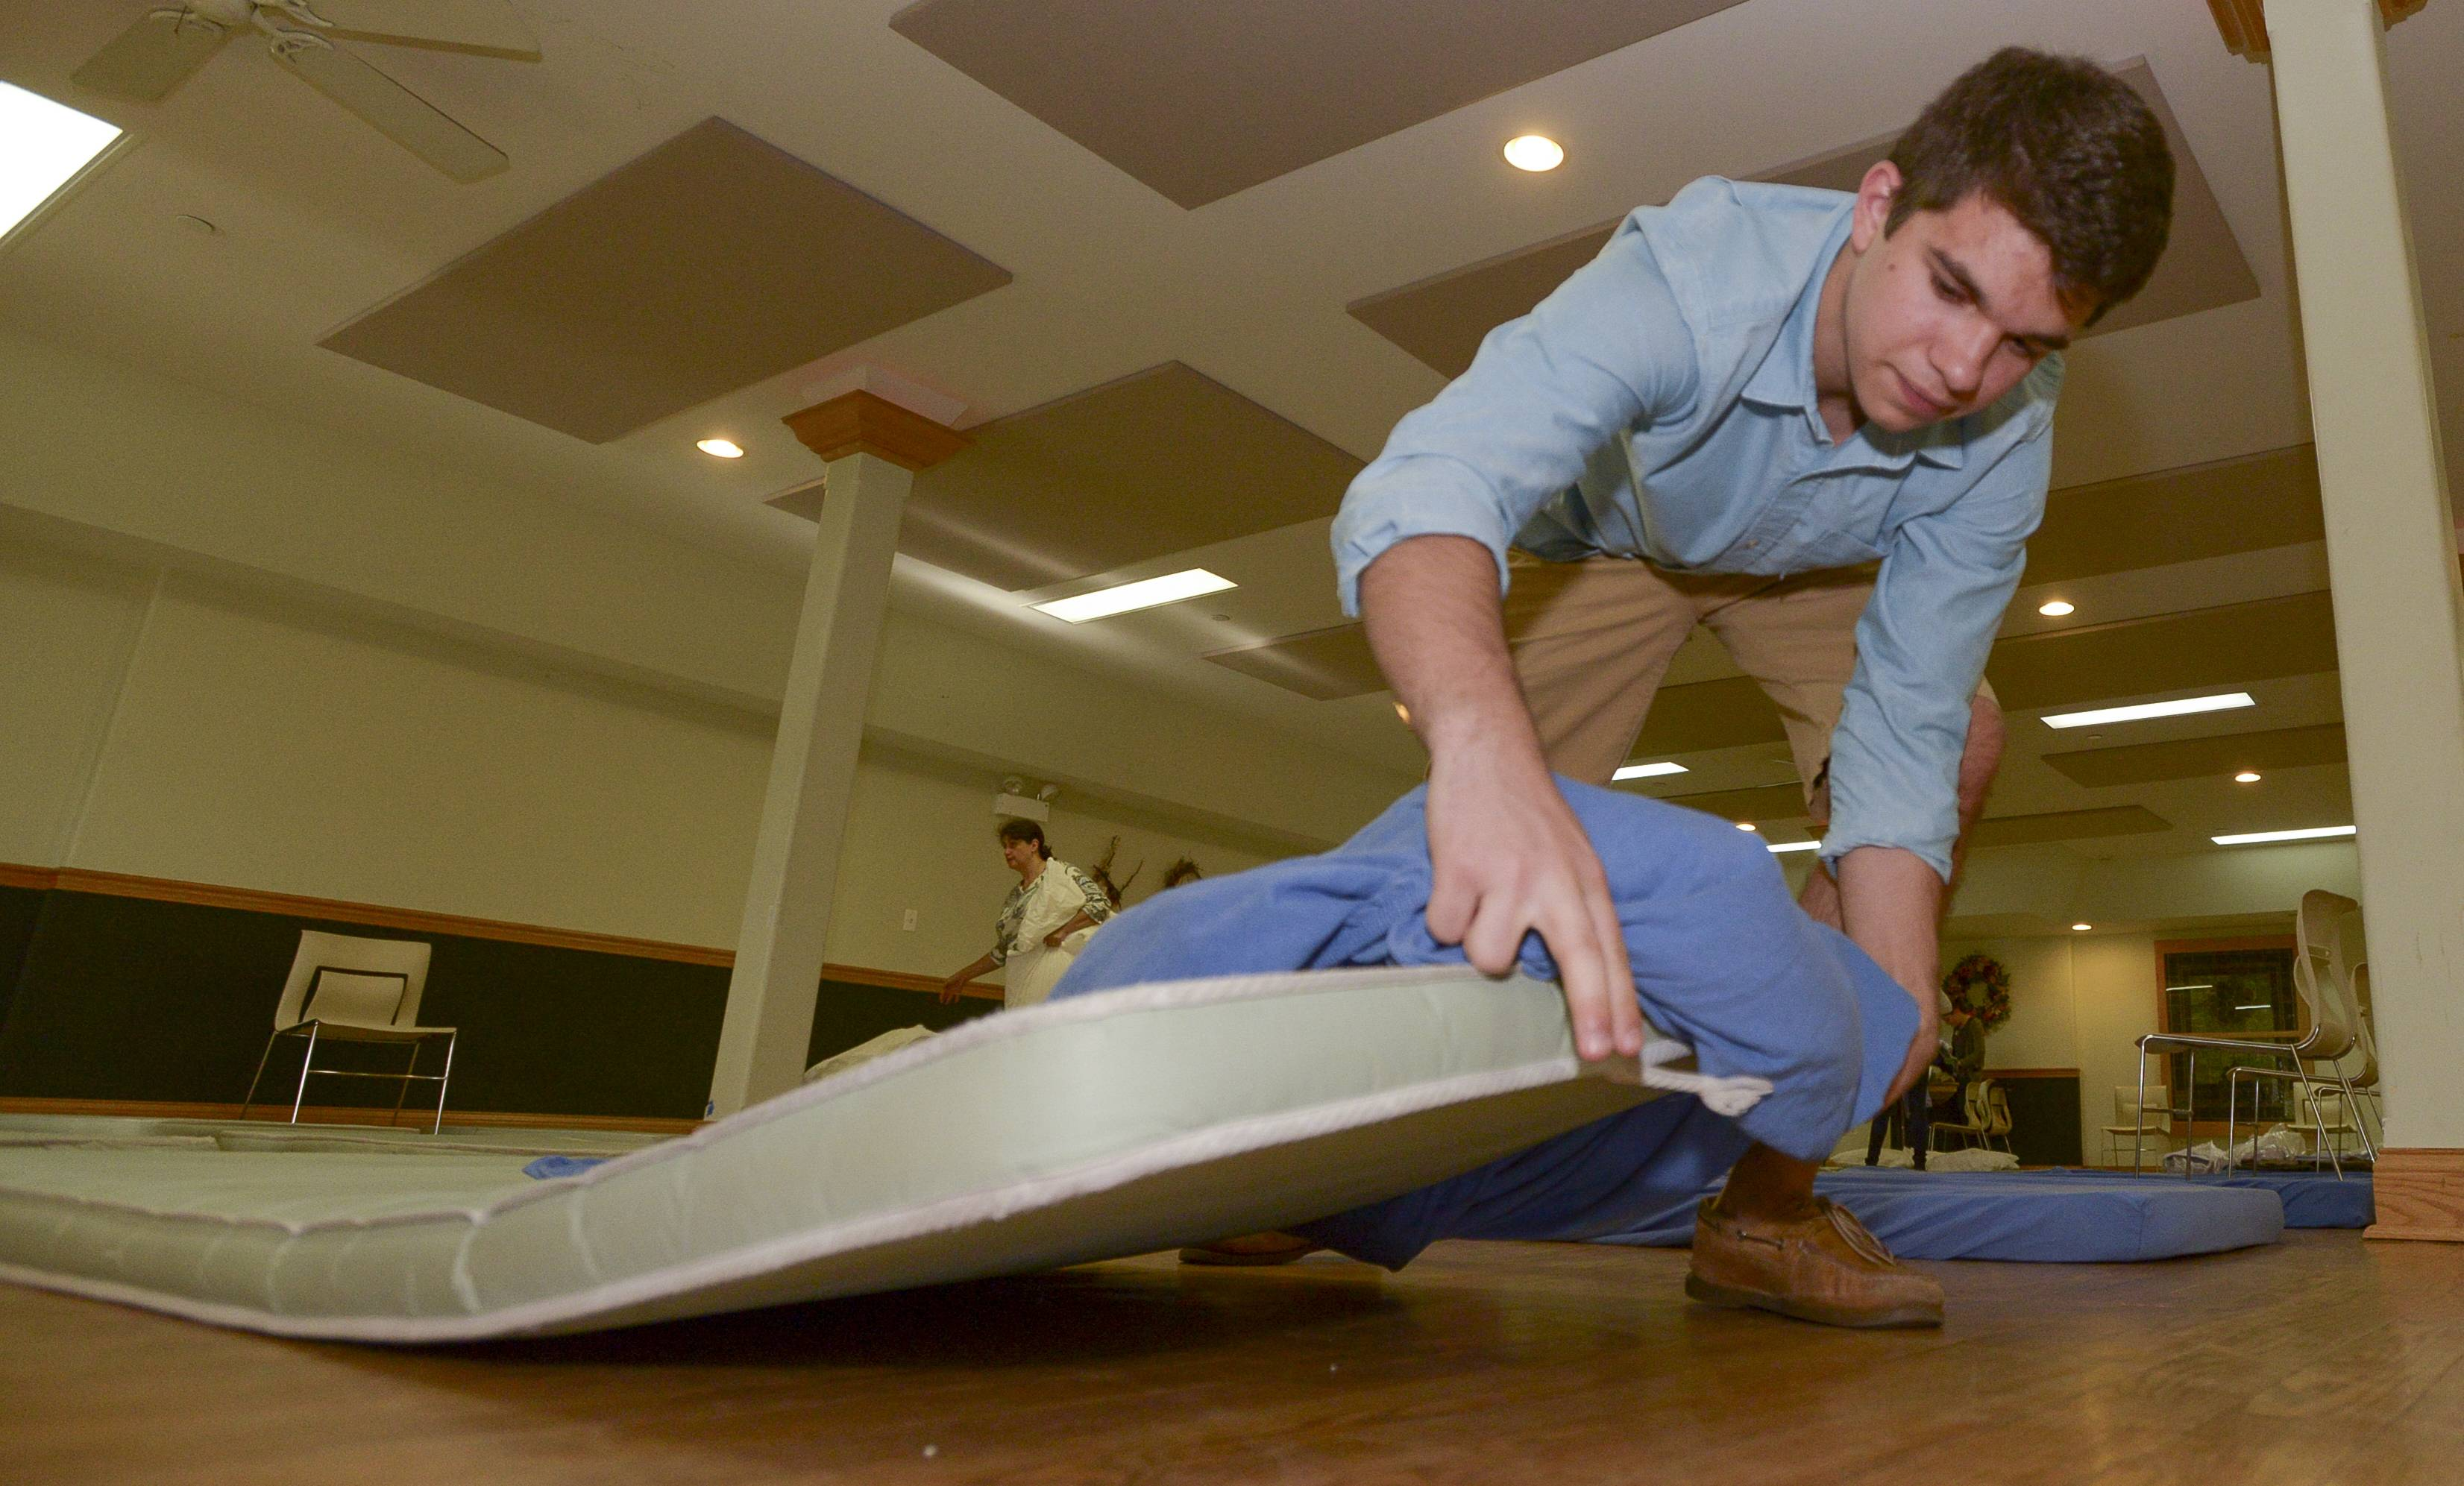 Daily Herald Leadership Team member Austin Hansen, 18, of Naperville North High School helps make up beds while volunteering Sunday at the Community United Methodist Church's PADS shelter in Naperville.